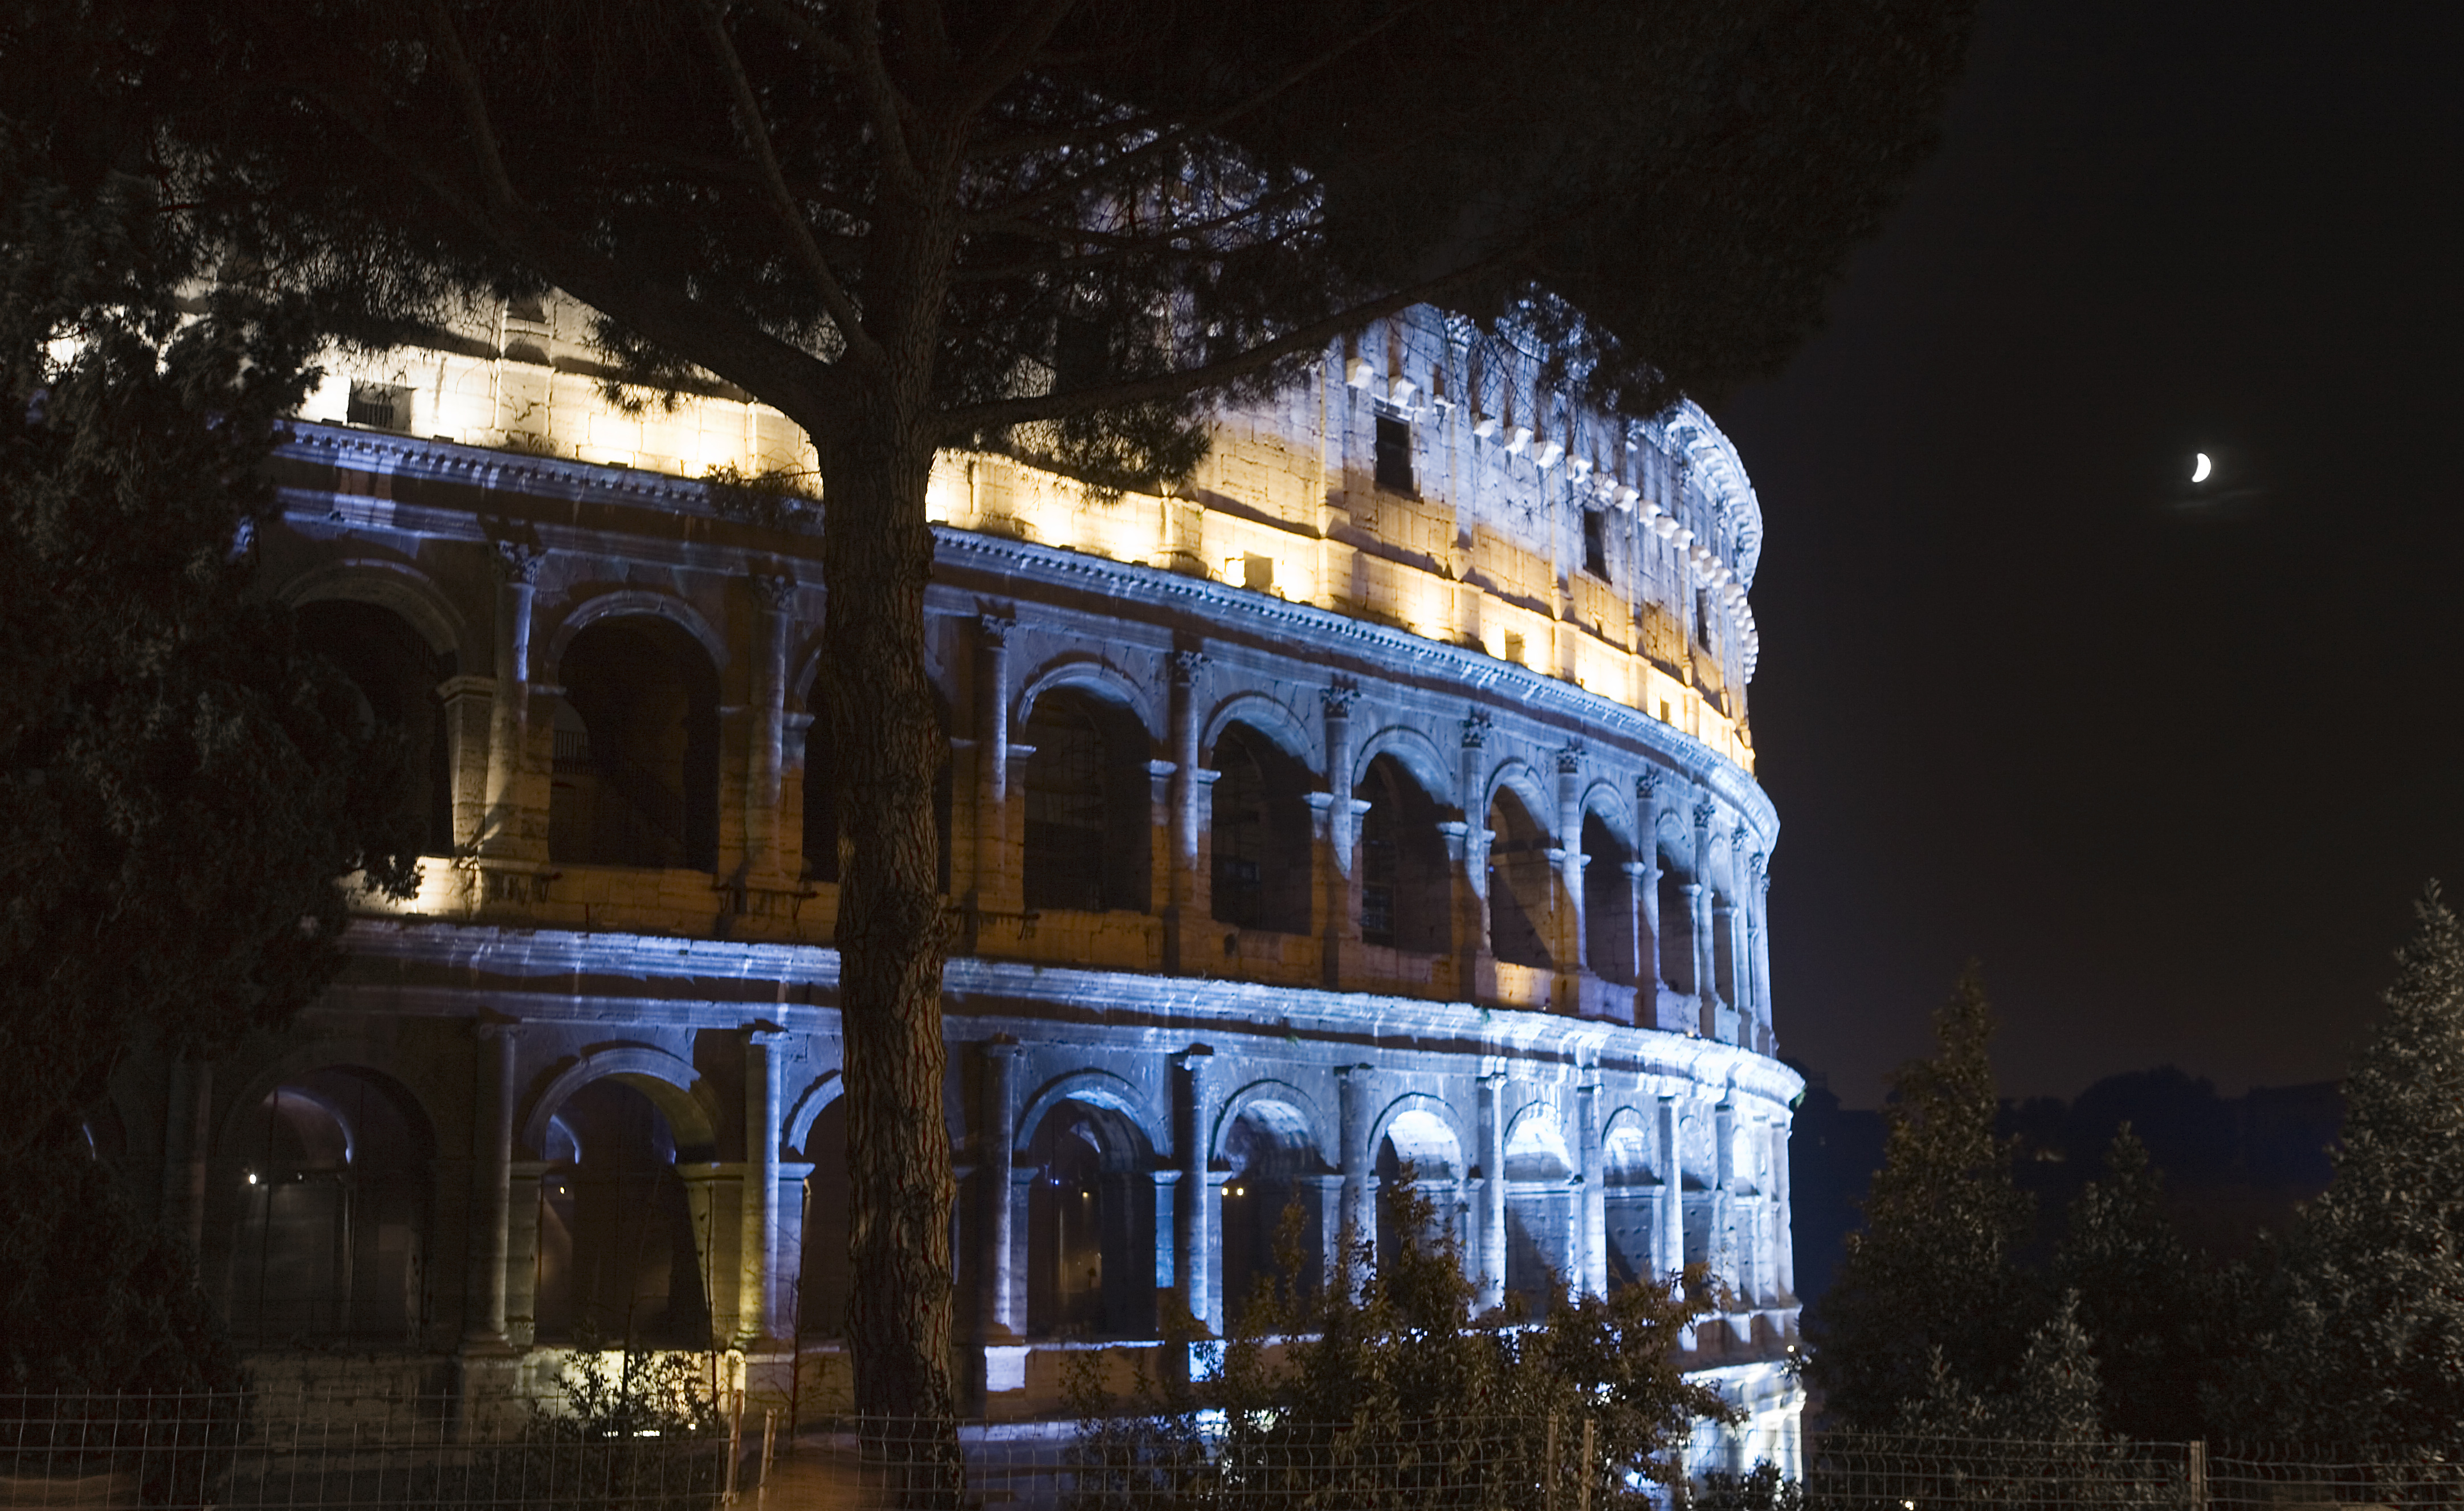 Beautiful Wallpaper Night Colosseum - The_Colosseum_at_night%2C_Rome_-_2141  Trends.jpg